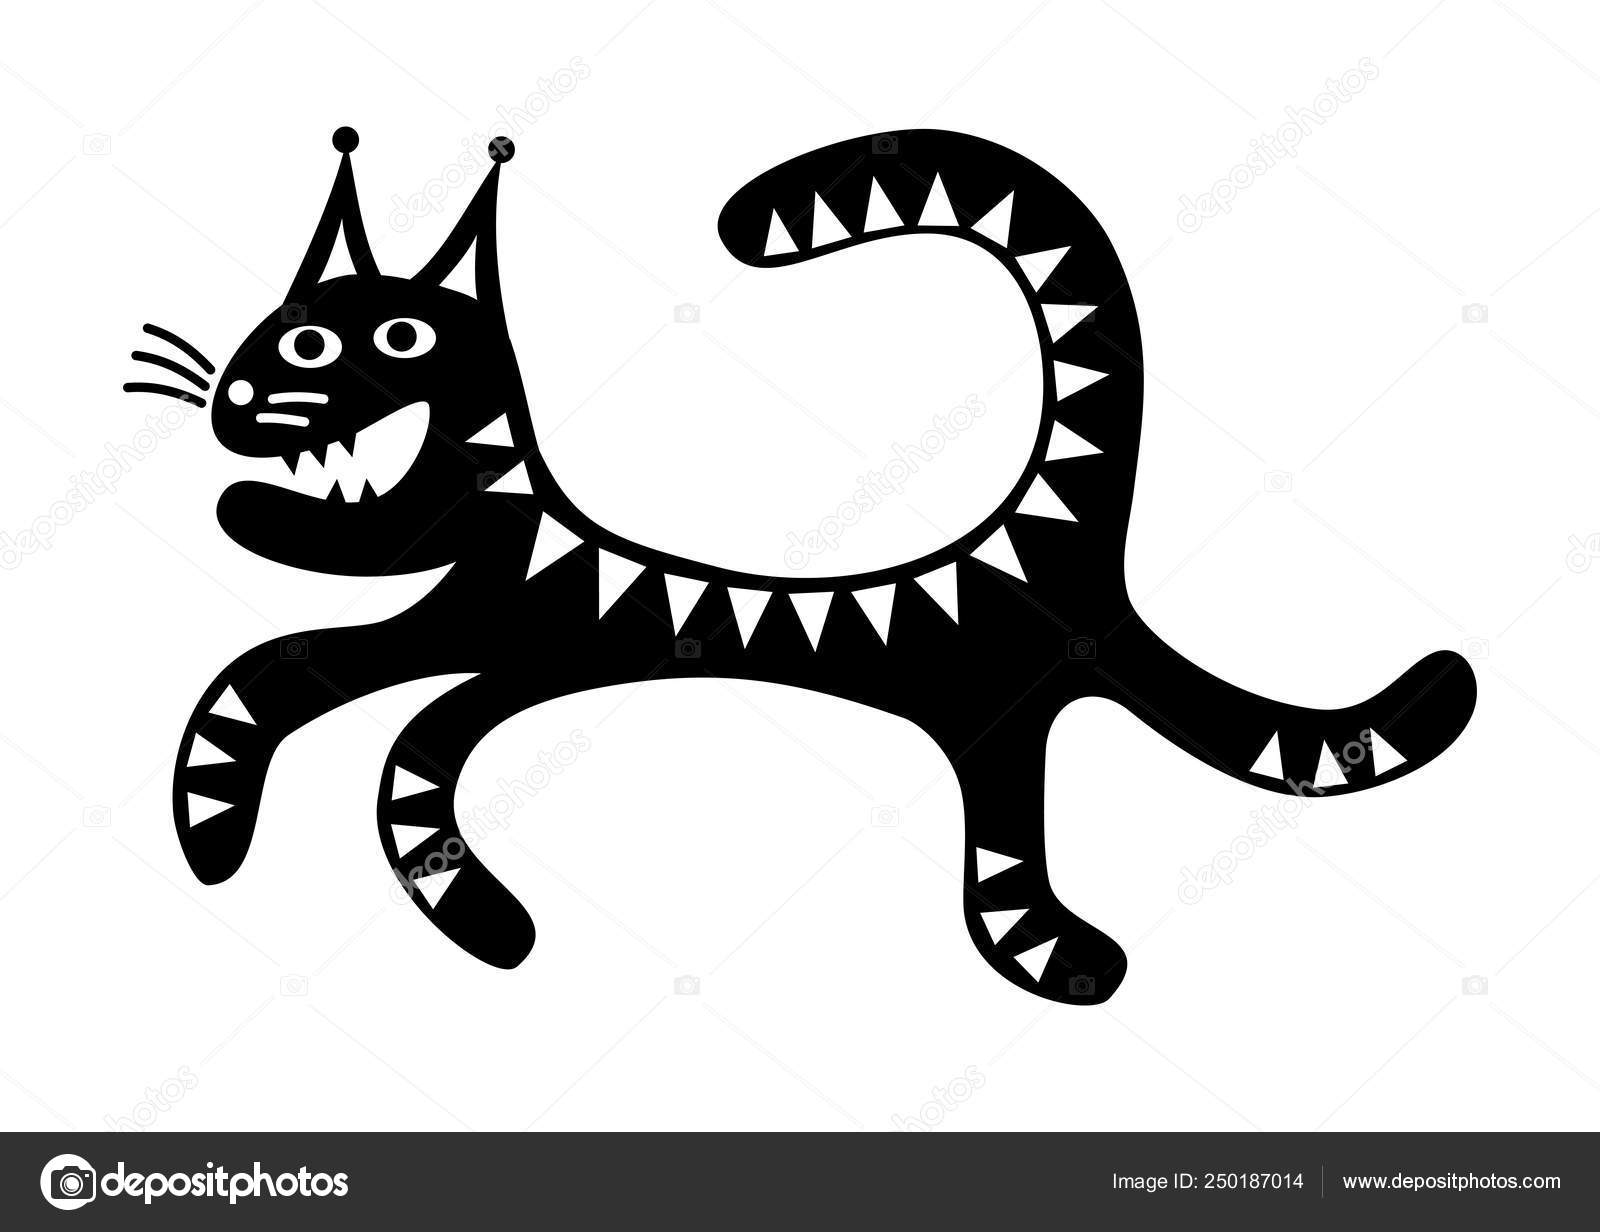 Drawings Crazy Black And White Running Cat Funny Cartoon Drawing Black White Crazy Vector Graphics Stock Vector C Alef88 250187014